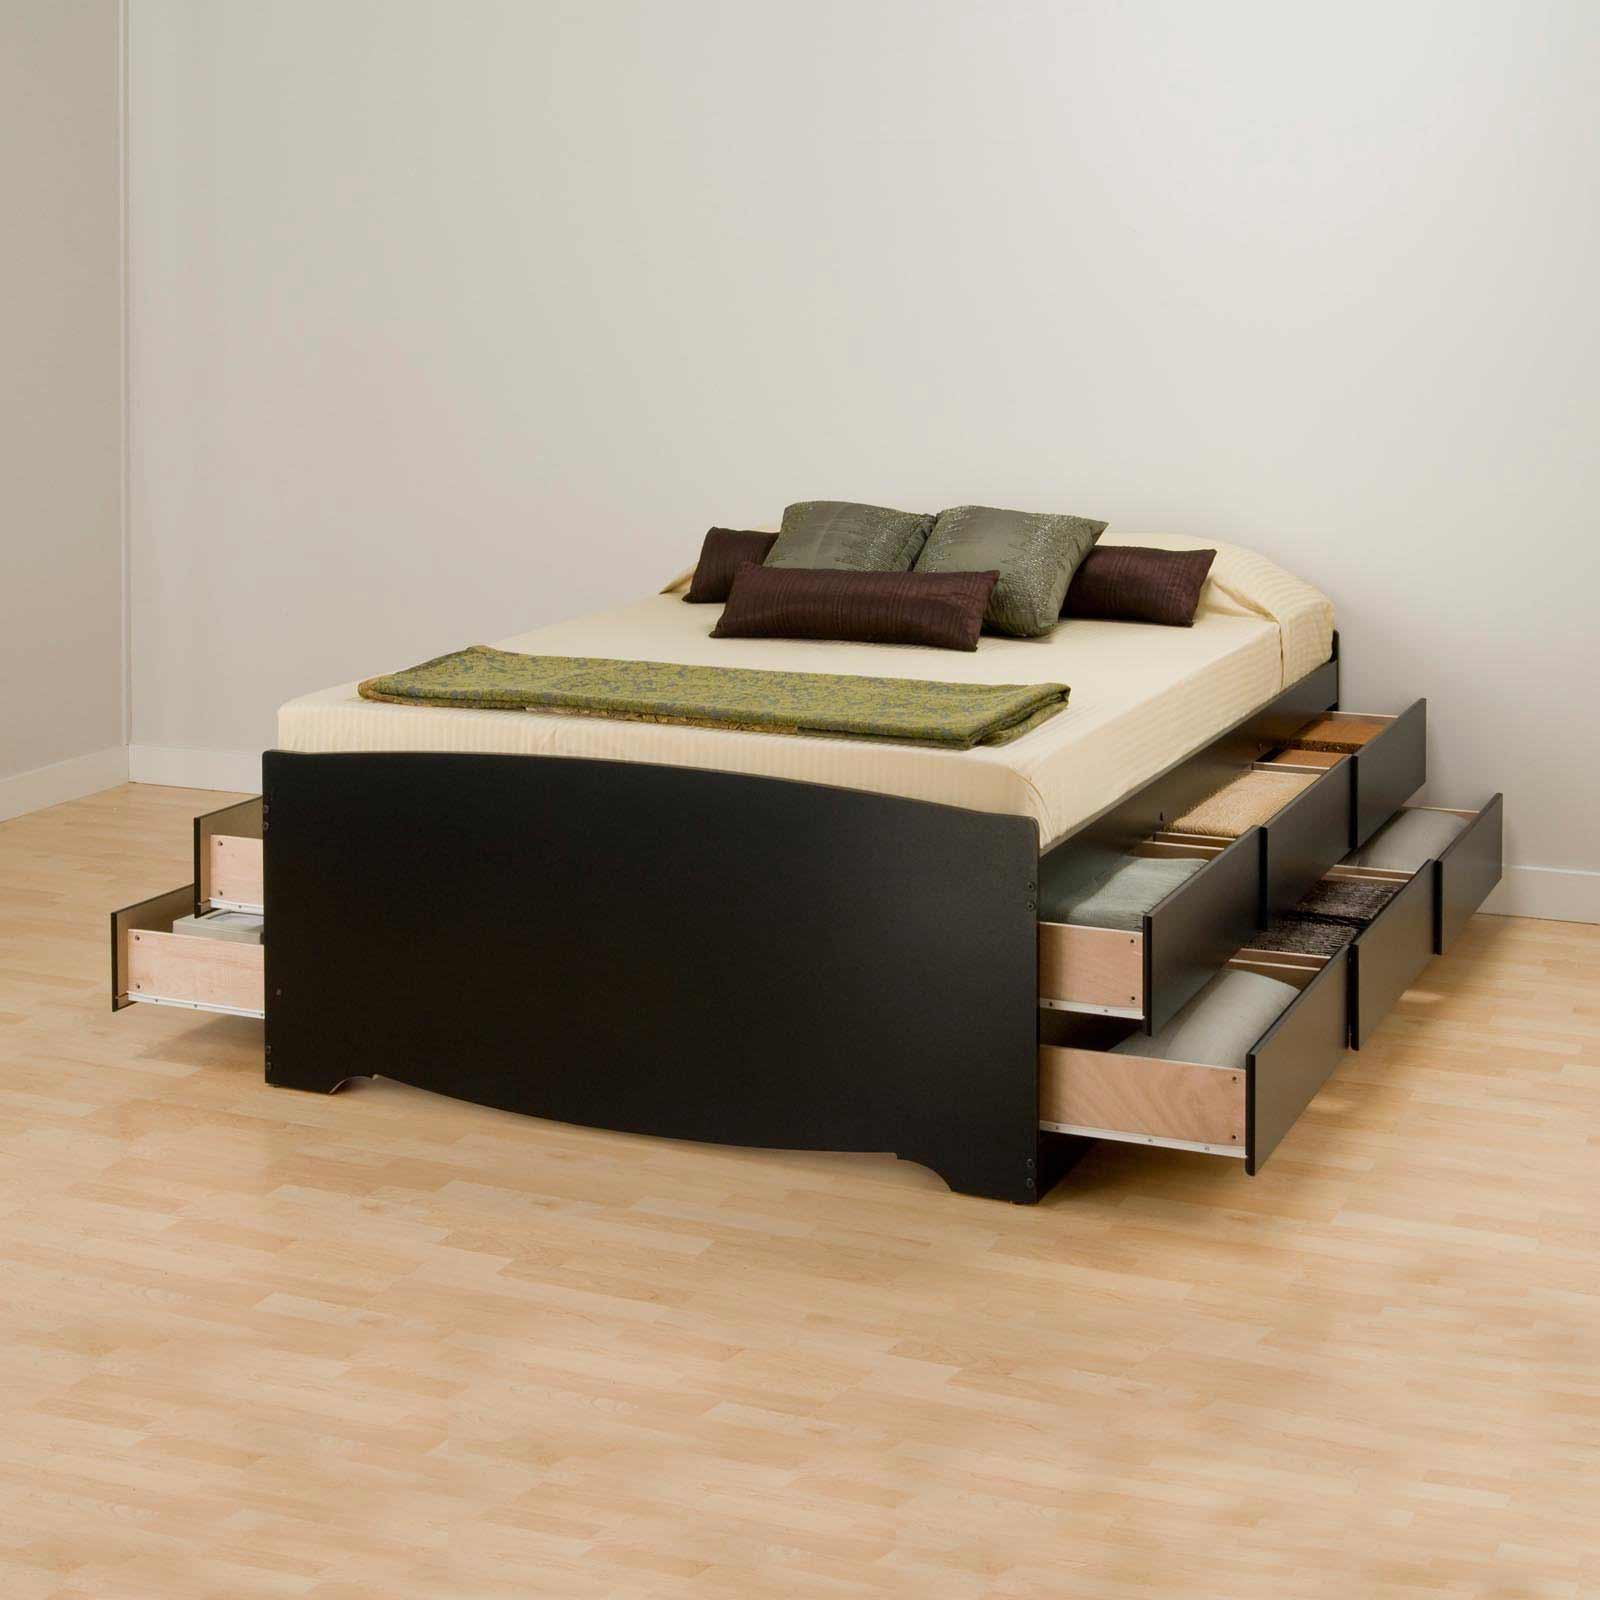 Tall Platform Bed with Double Side Storage